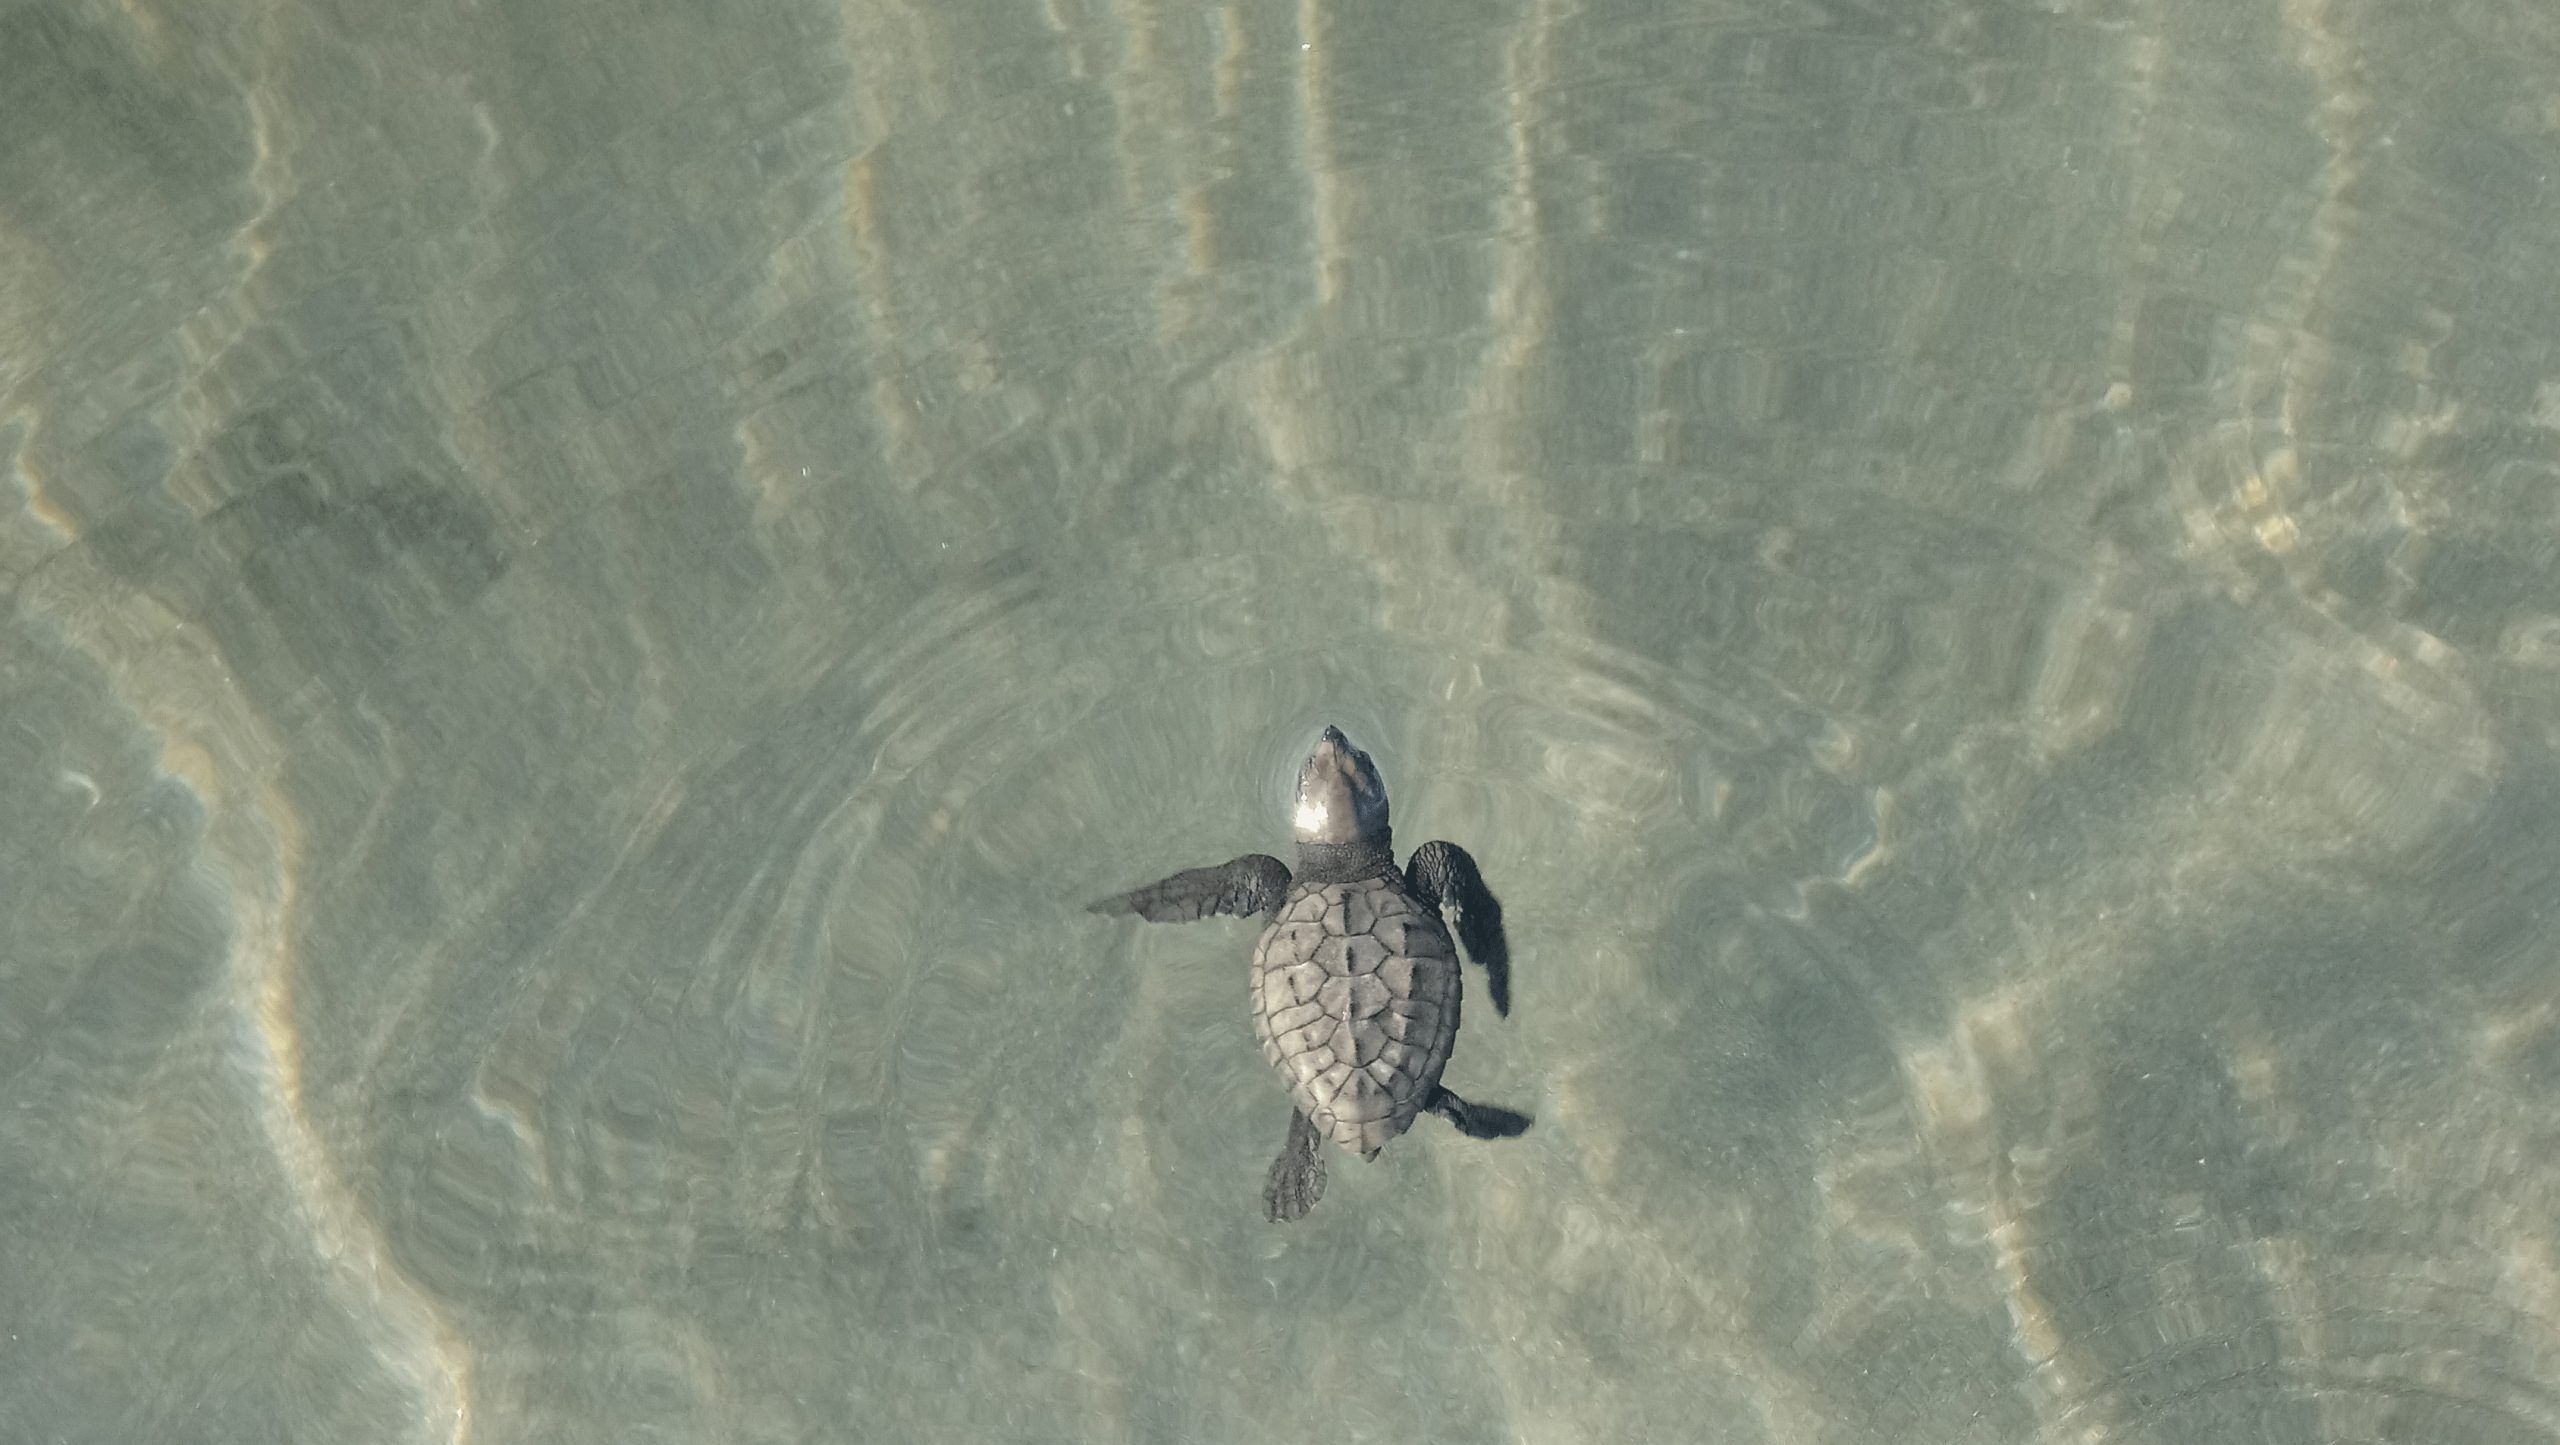 Baby turtle swimming in the ocean